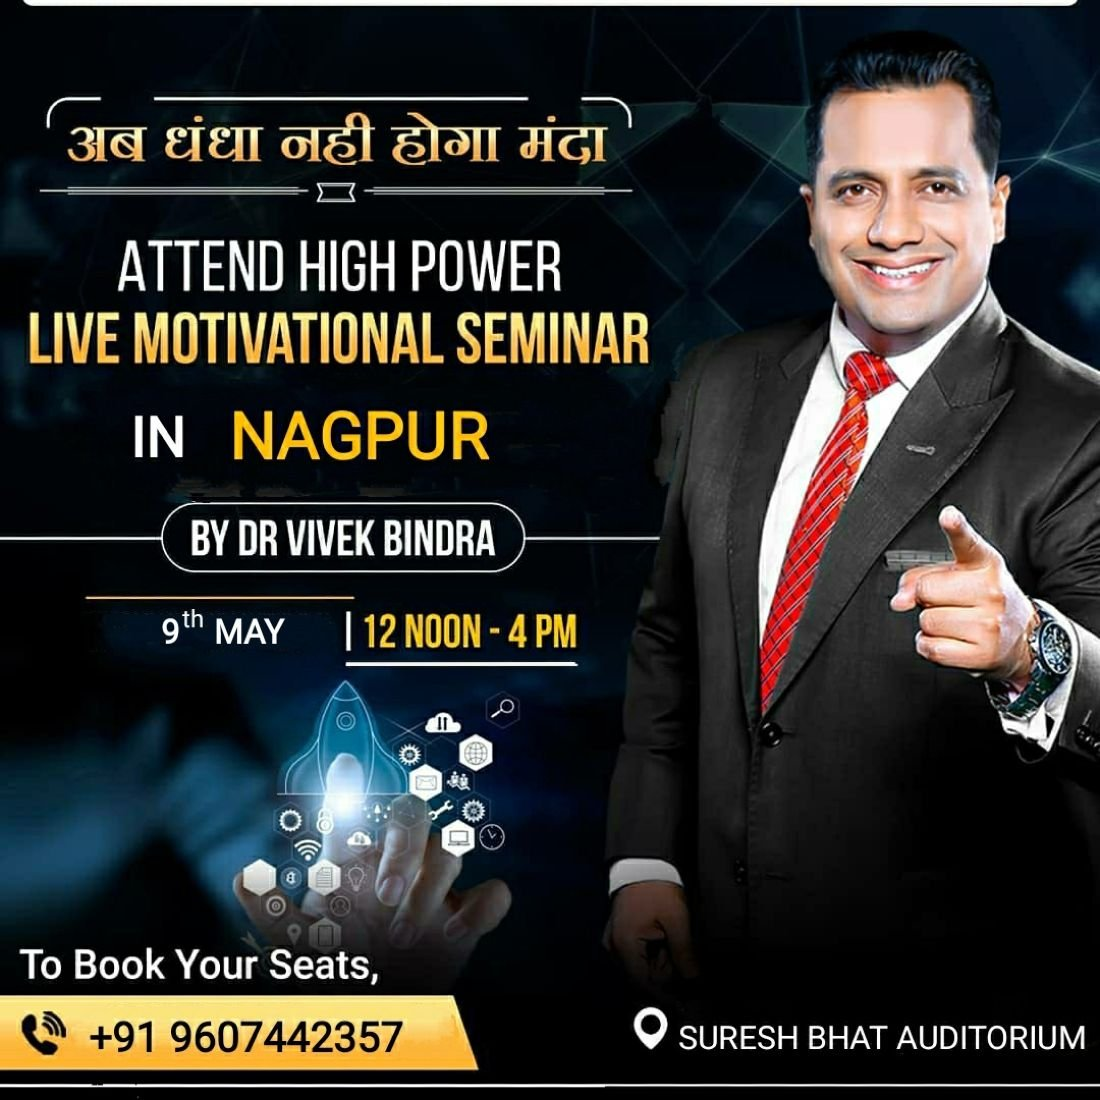 Bounce Back 2.0 Nagpur with Dr. Vivek Bindra